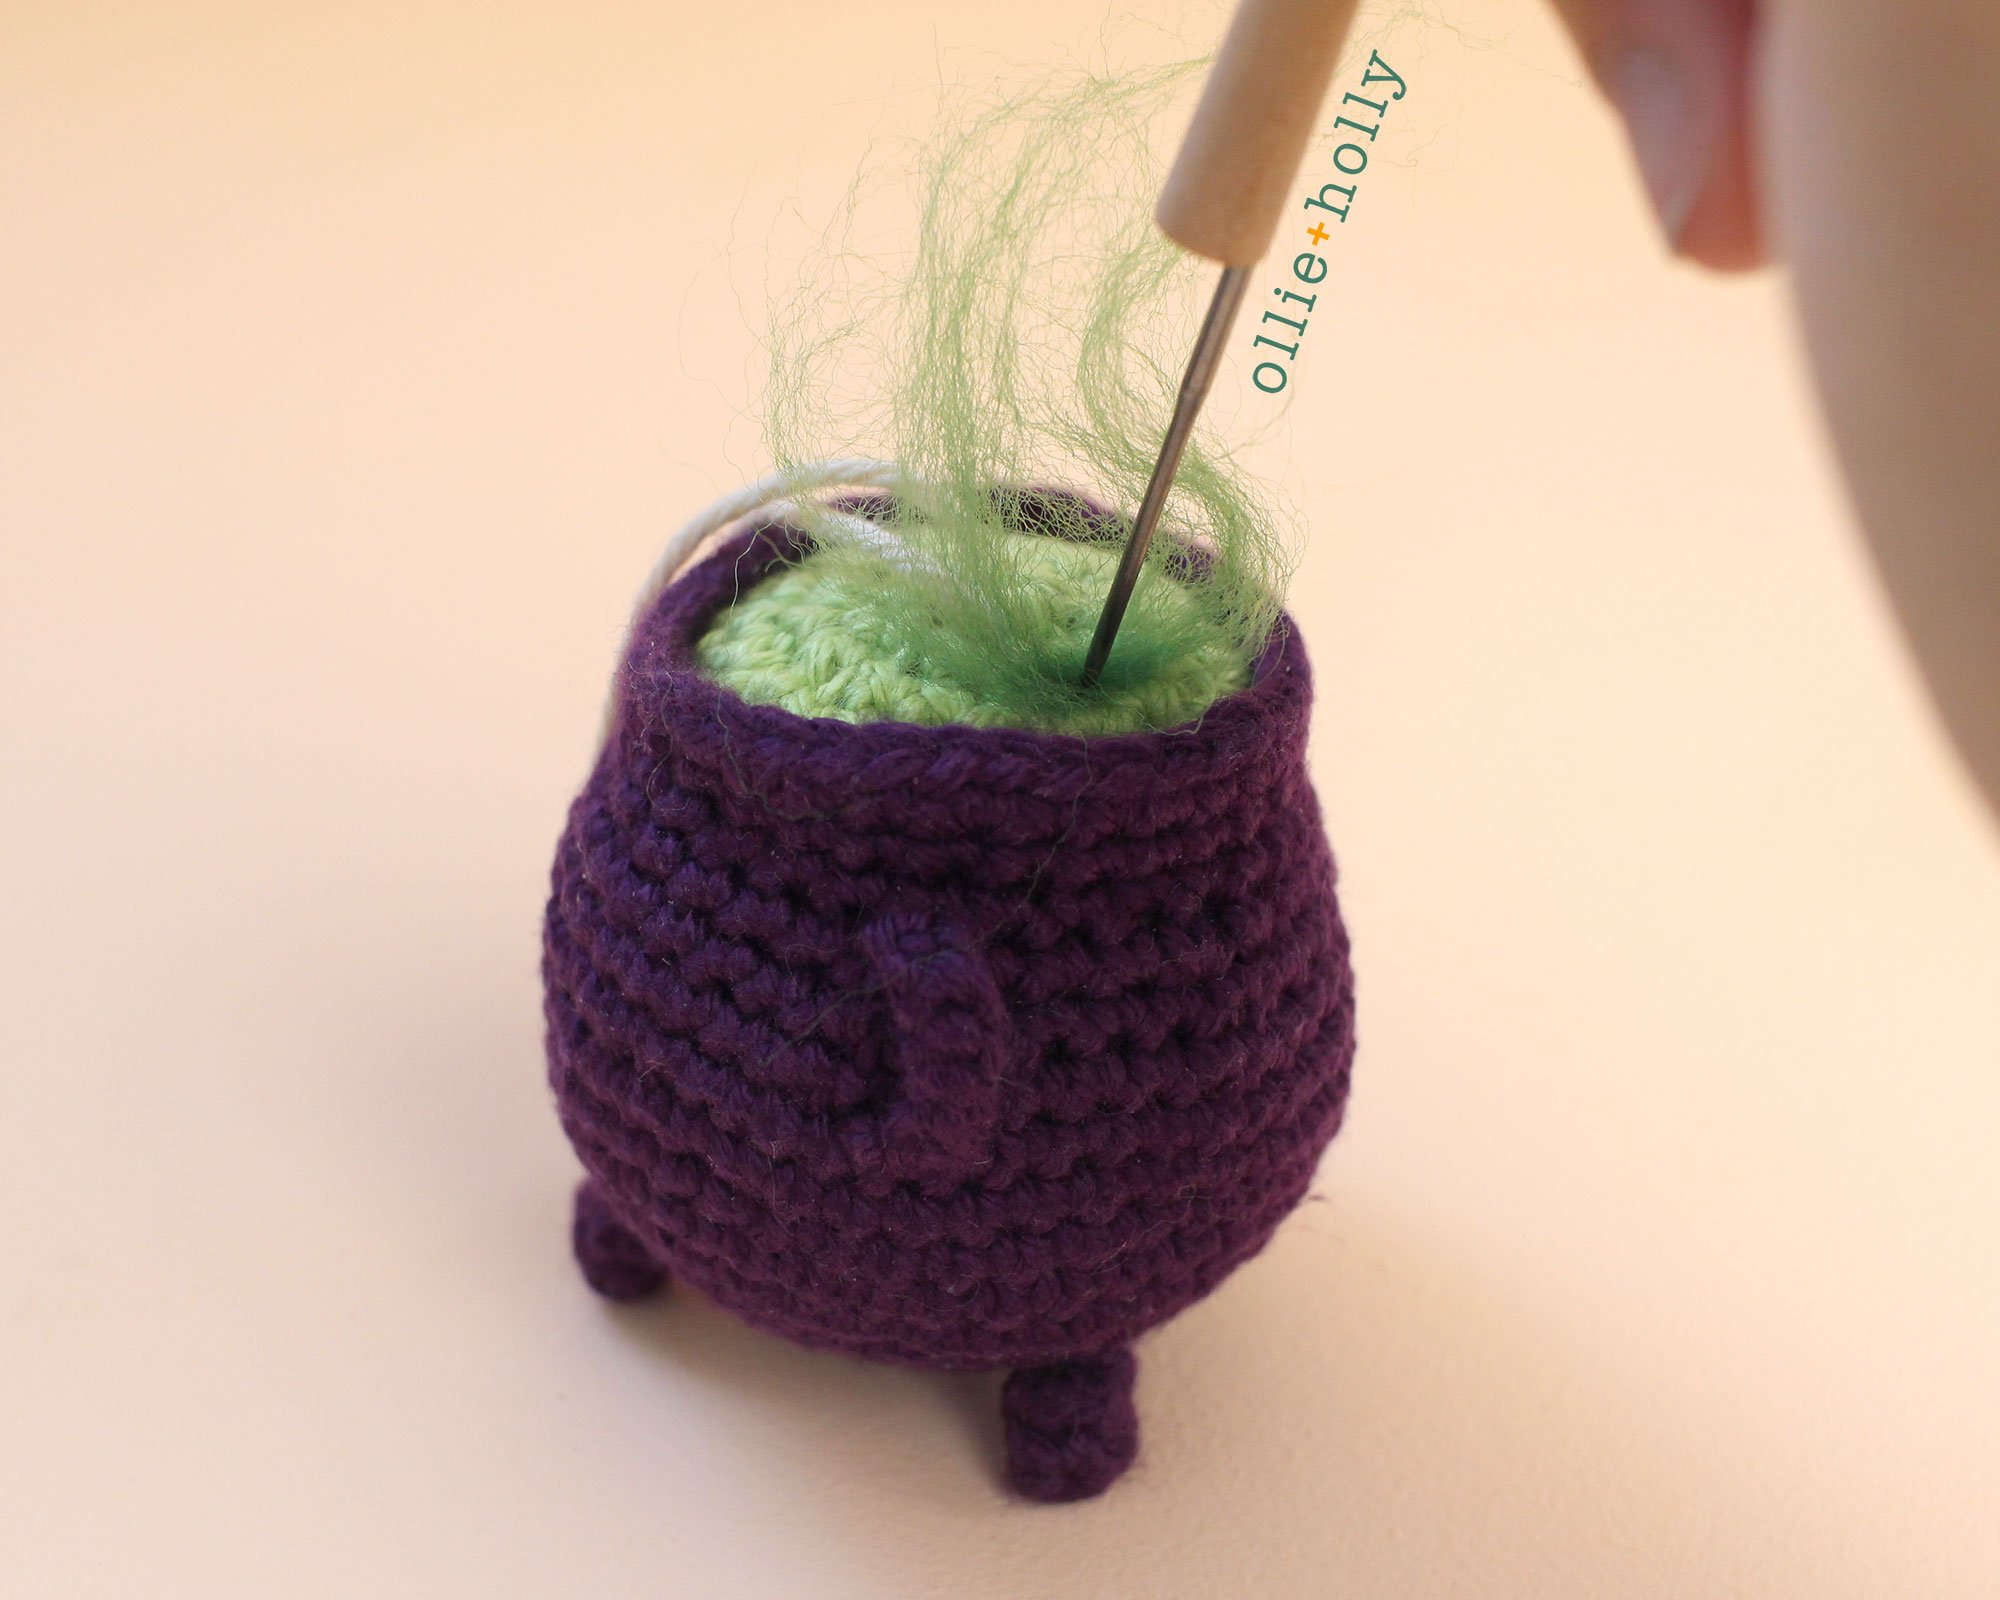 Free Halloween Witch's Cauldron Ornament Amigurumi Crochet Pattern Step 11